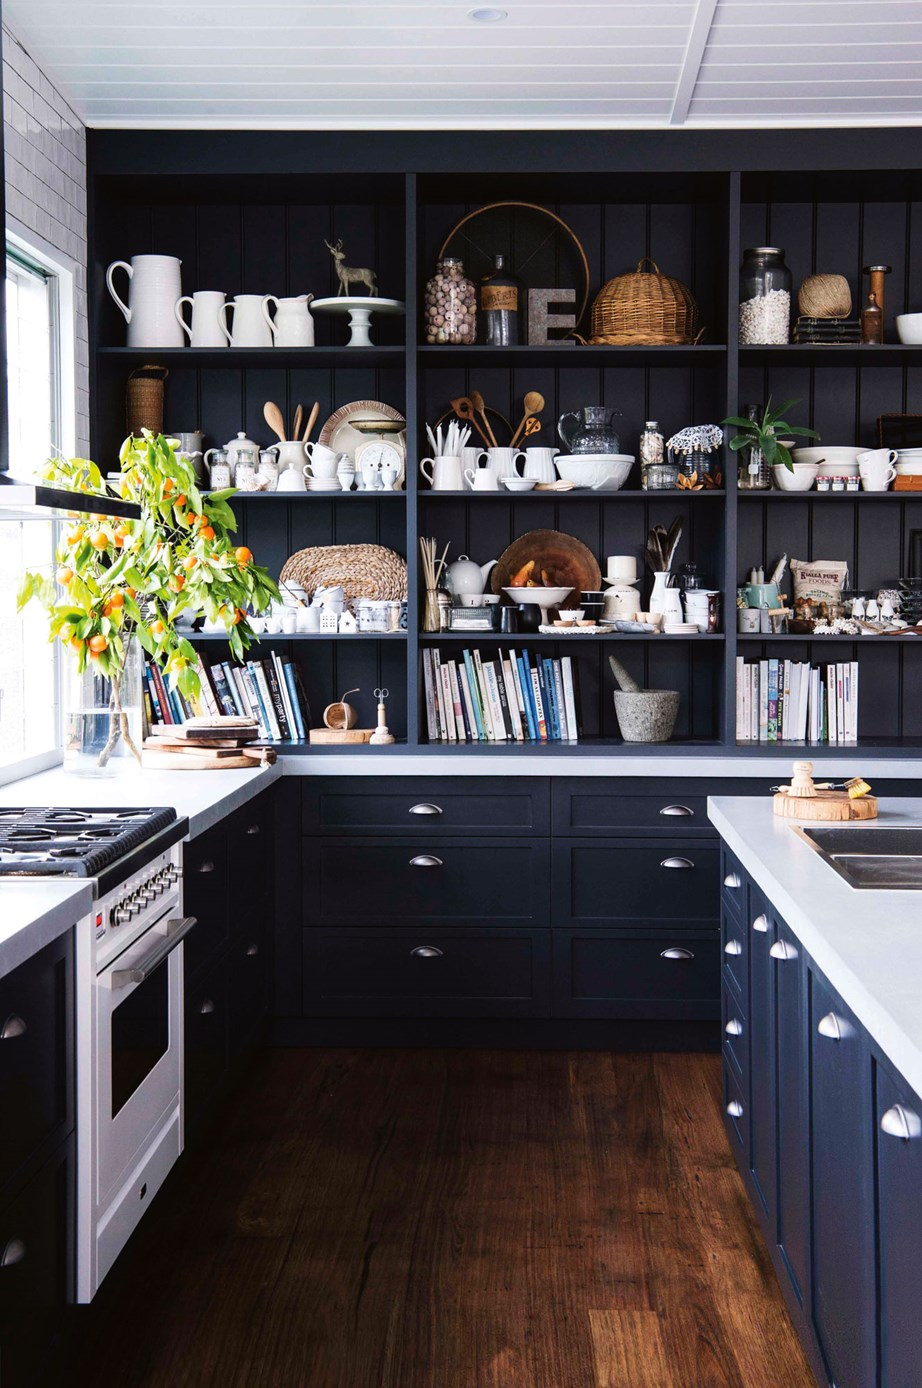 """The owner of this [South Coast beach house](https://www.homestolove.com.au/serene-nsw-beach-house-filled-with-handmade-furniture-13872